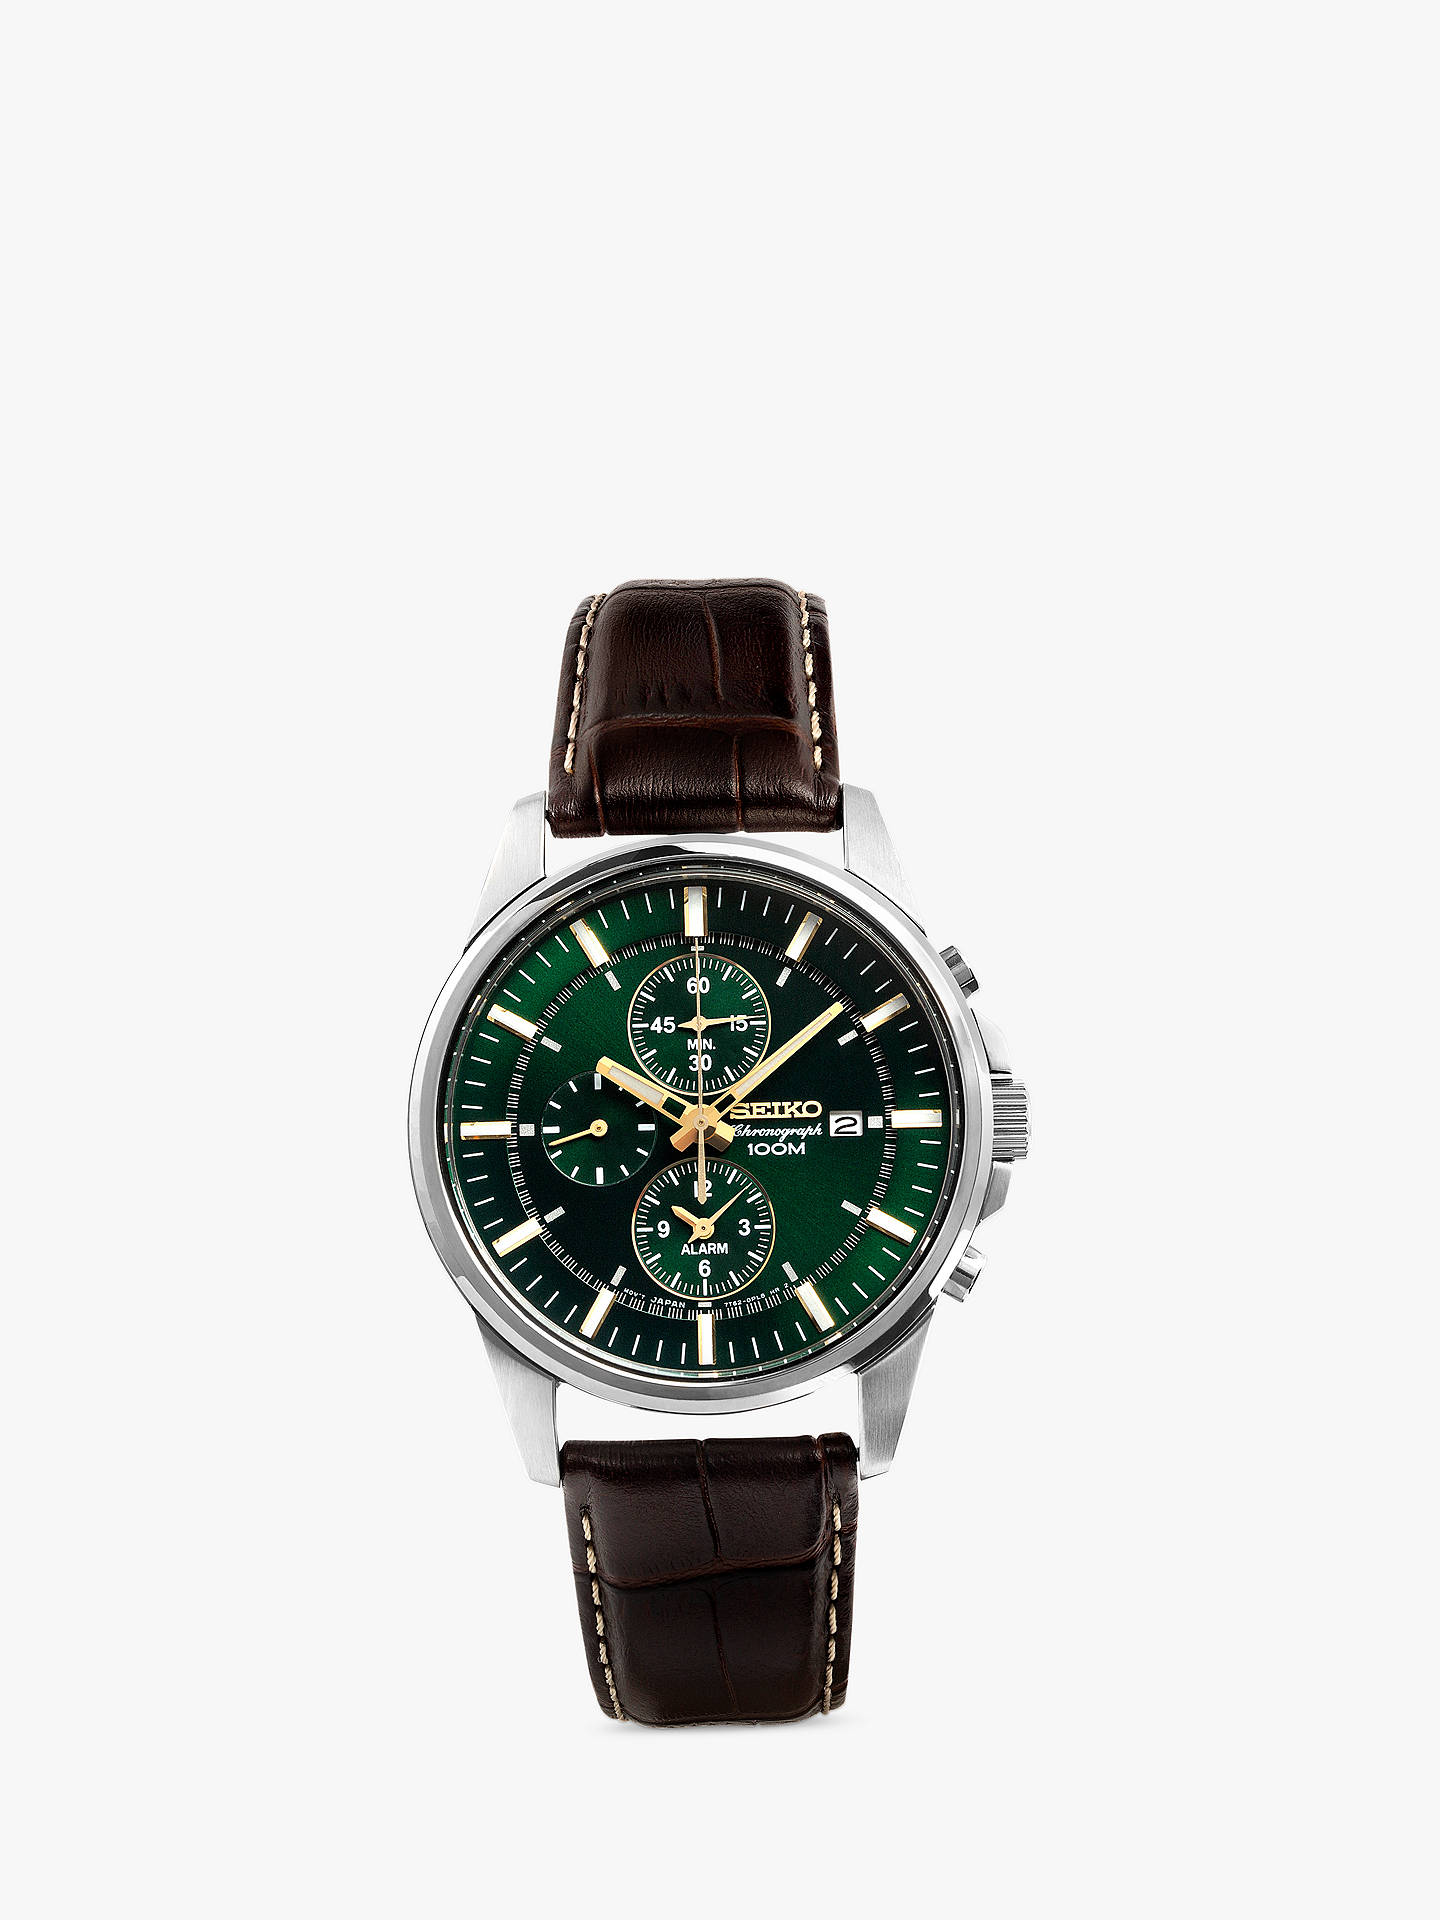 353ce7109 Buy Seiko SNAF09P1 Men's Chronograph Leather Strap Watch, Brown/Green  Online at johnlewis.